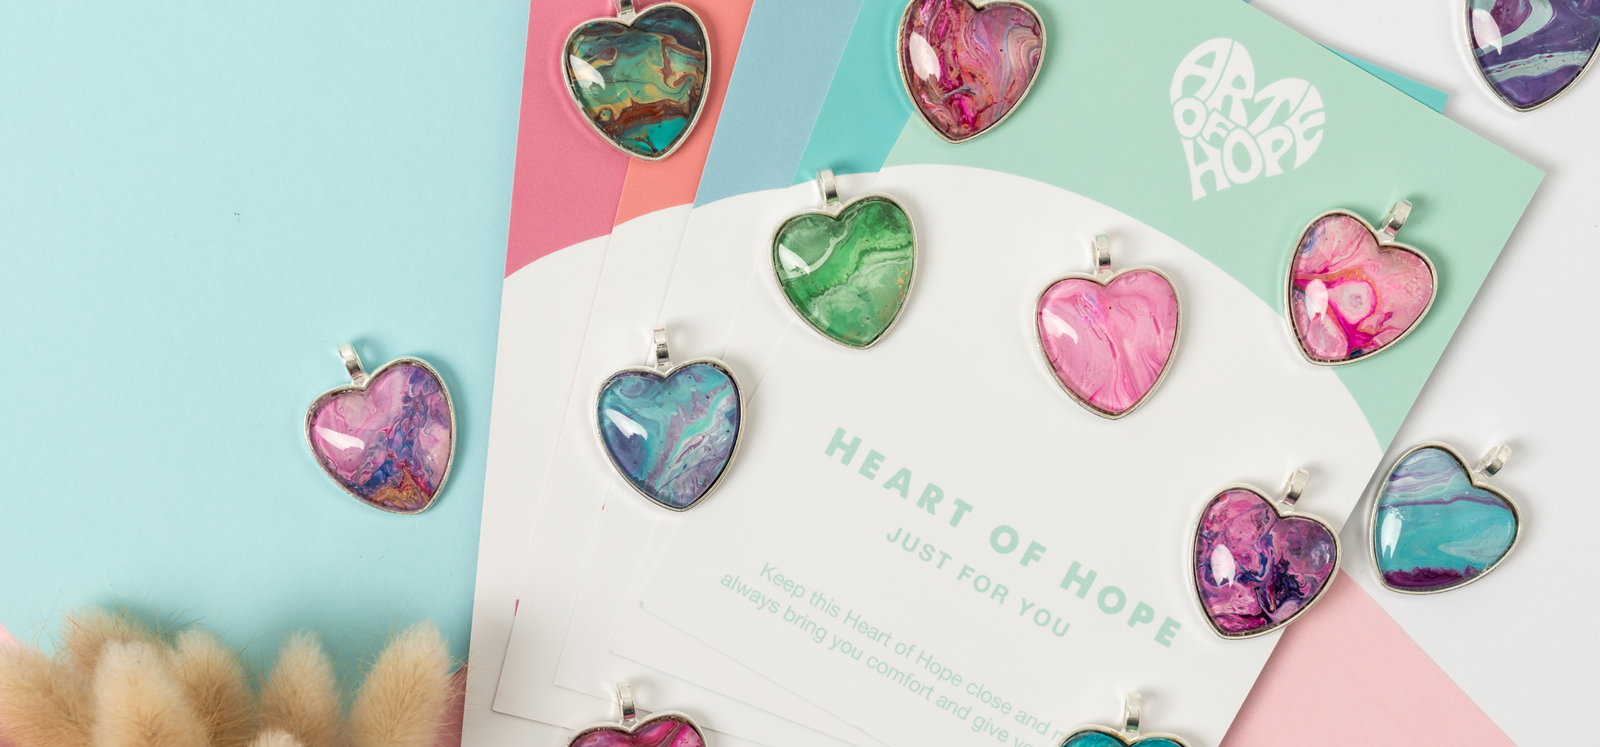 Fundraise With A Meaningful Keepsake